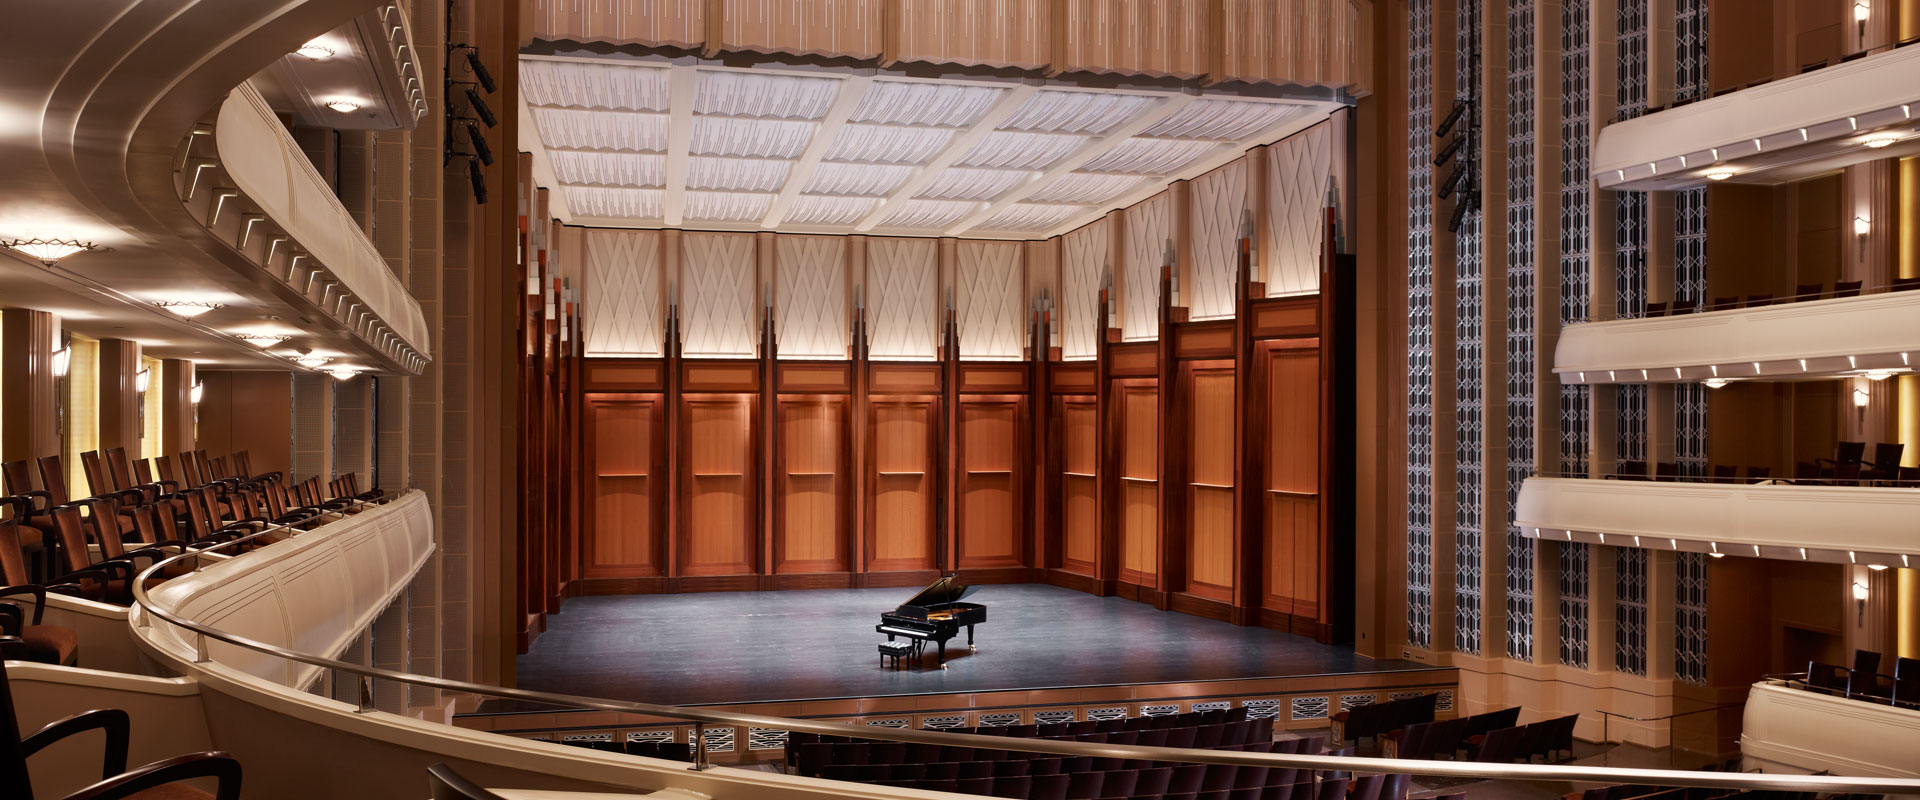 Reynolds Hall, Smith Center for the Performing Arts